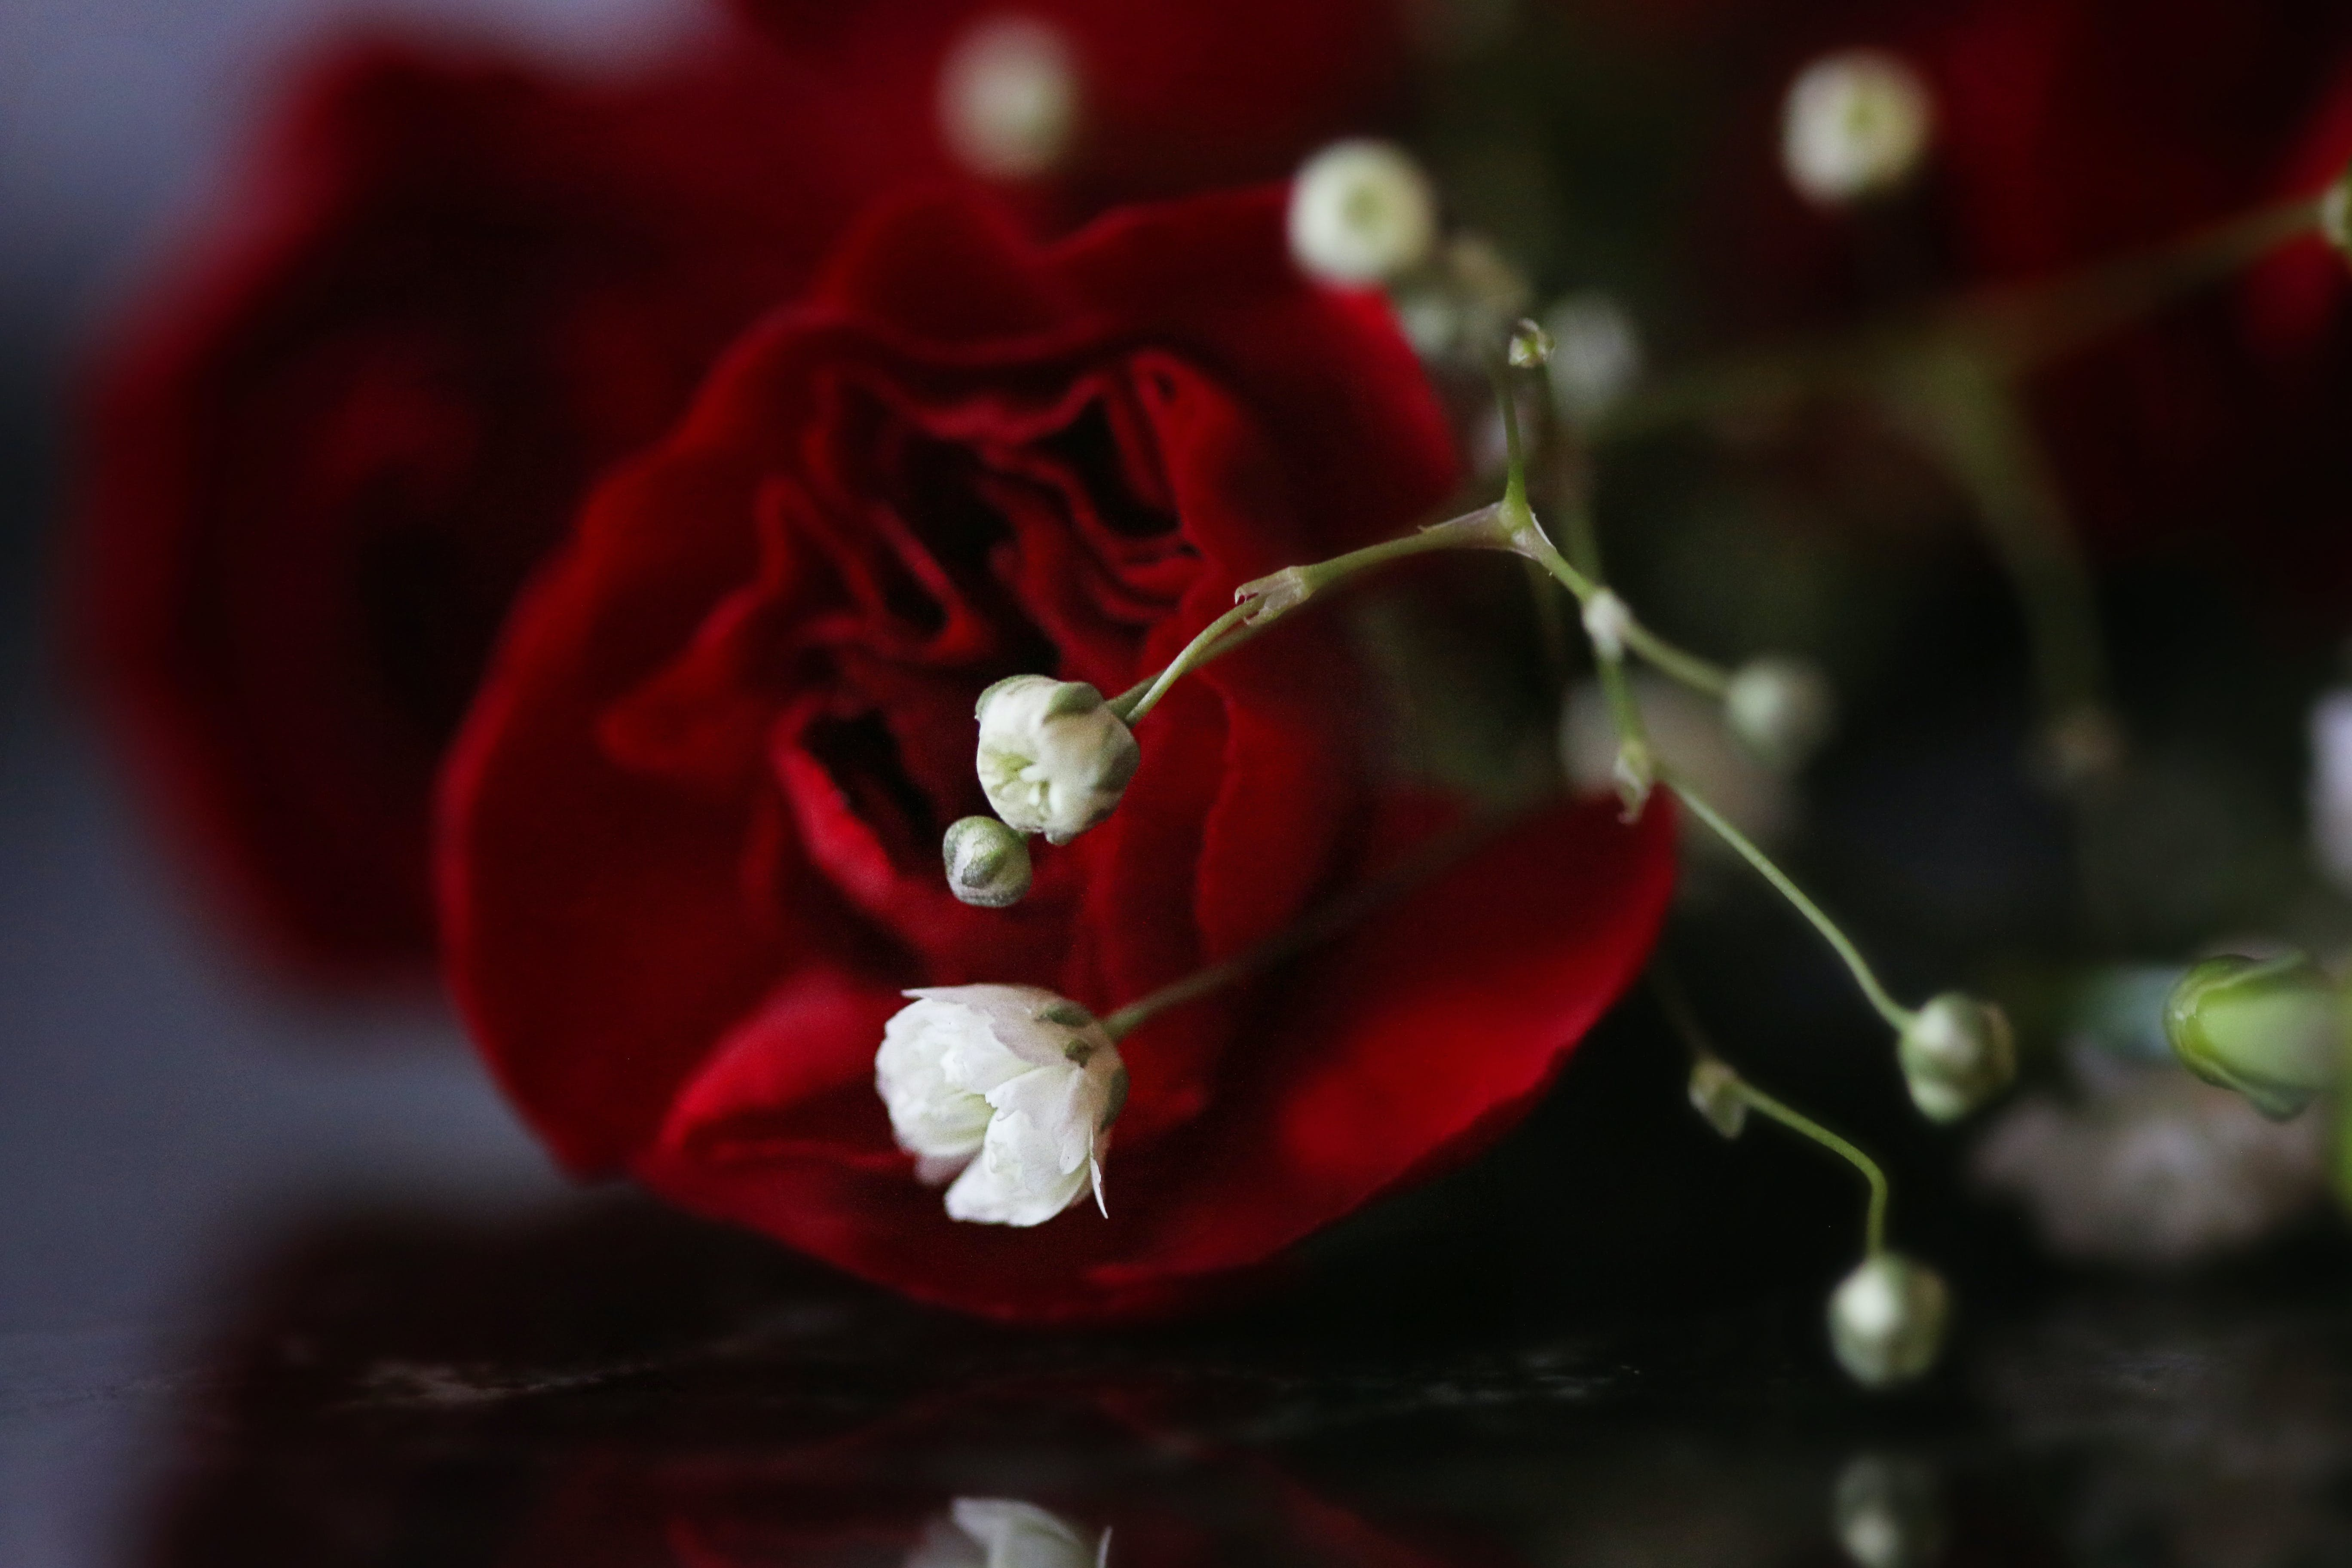 Red Rose Flower and White Baby's-breath Flower